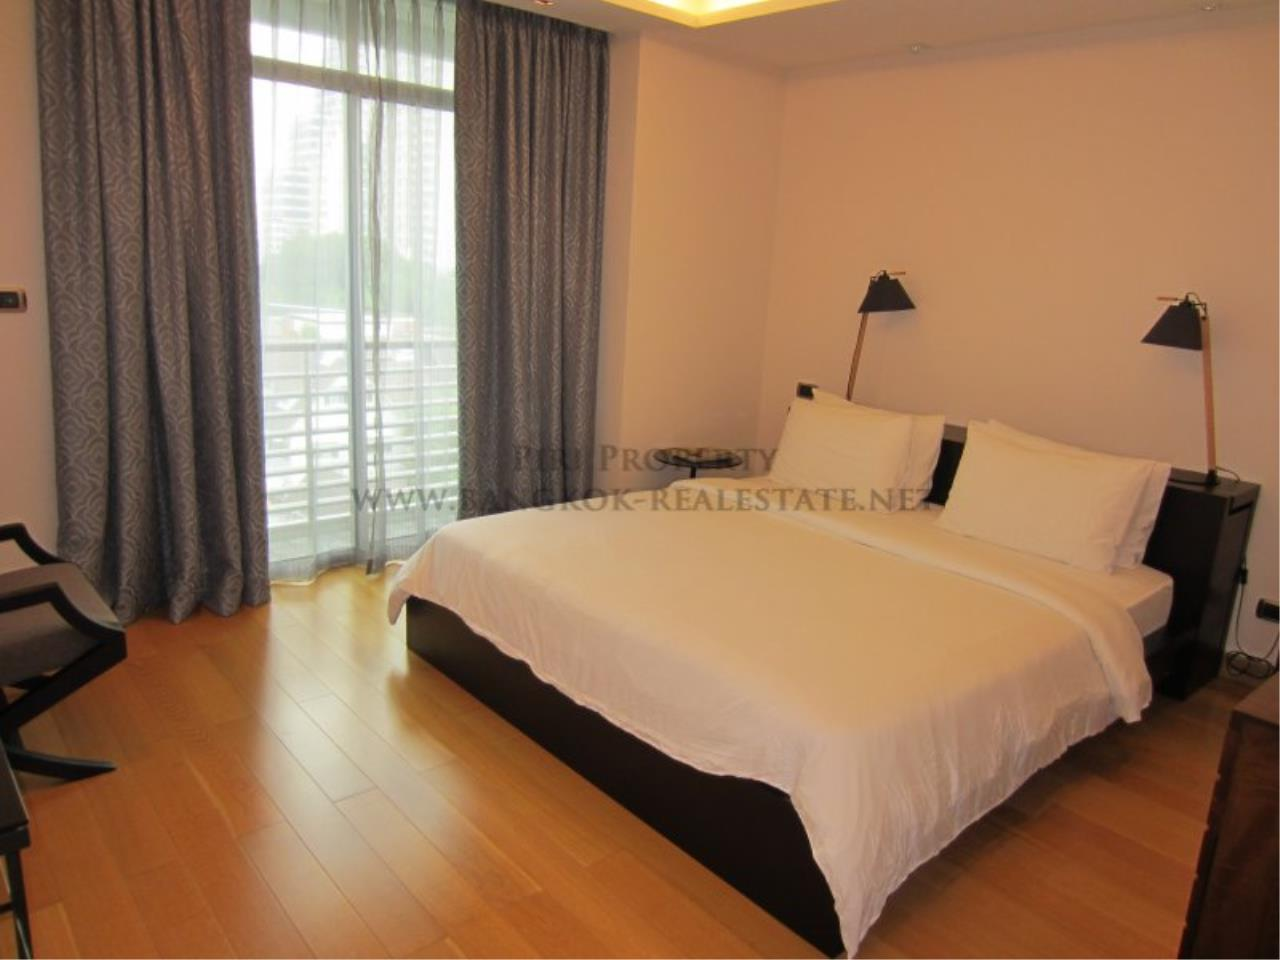 Piri Property Agency's Le Monaco - Spacious 1 Bedroom Condo for rent in Ari - Luxury Living in Ari 4